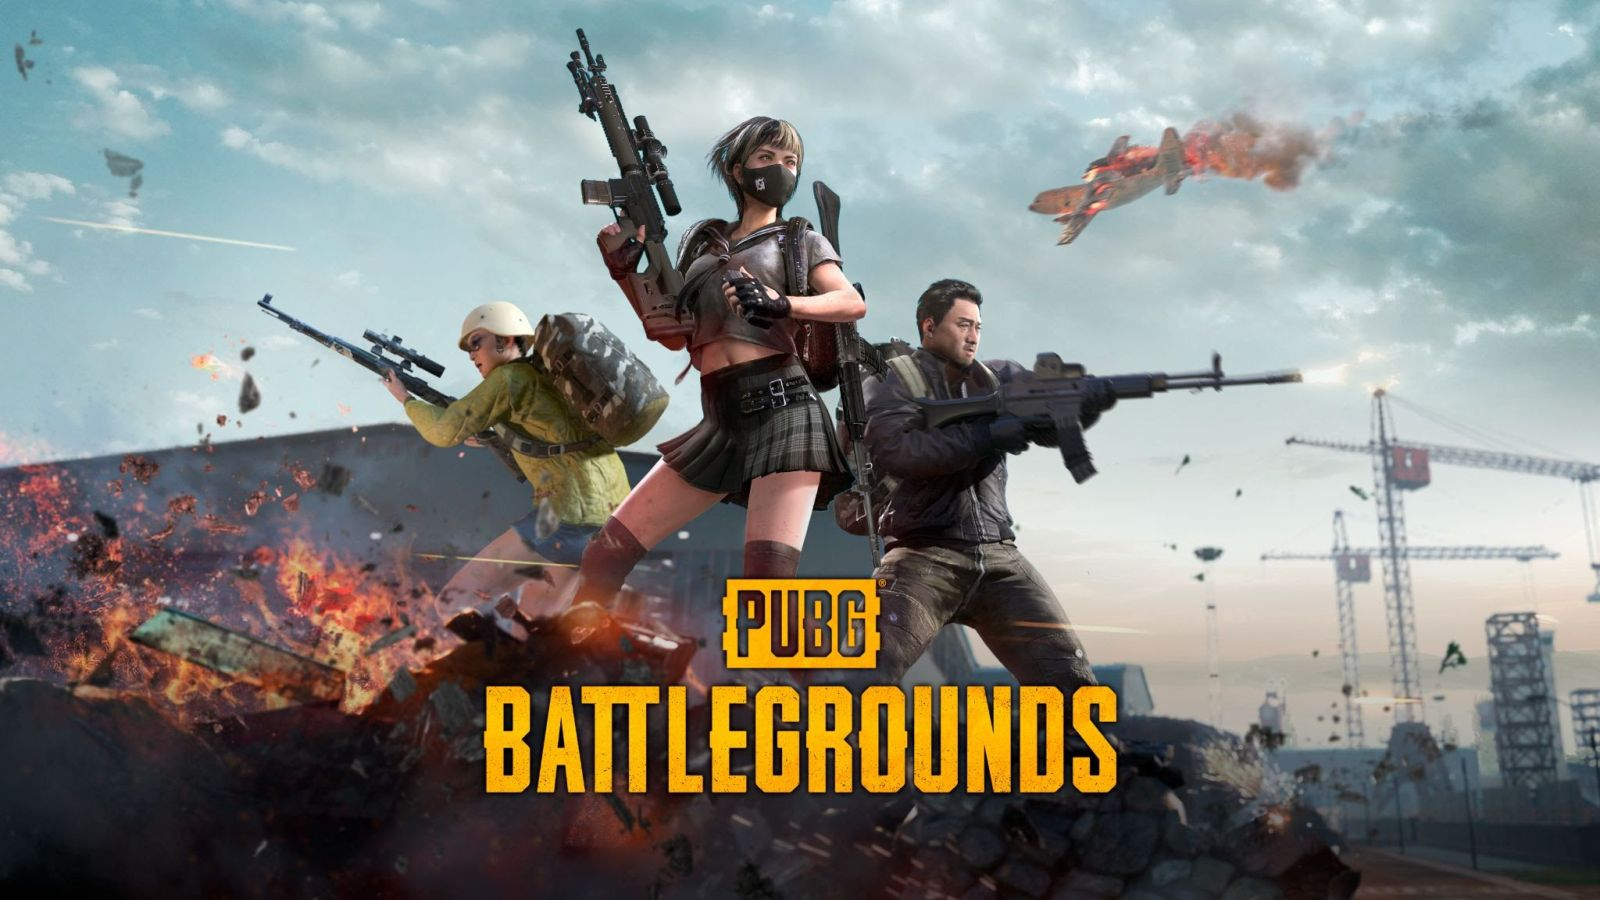 PUBG update brings new map and battle pass